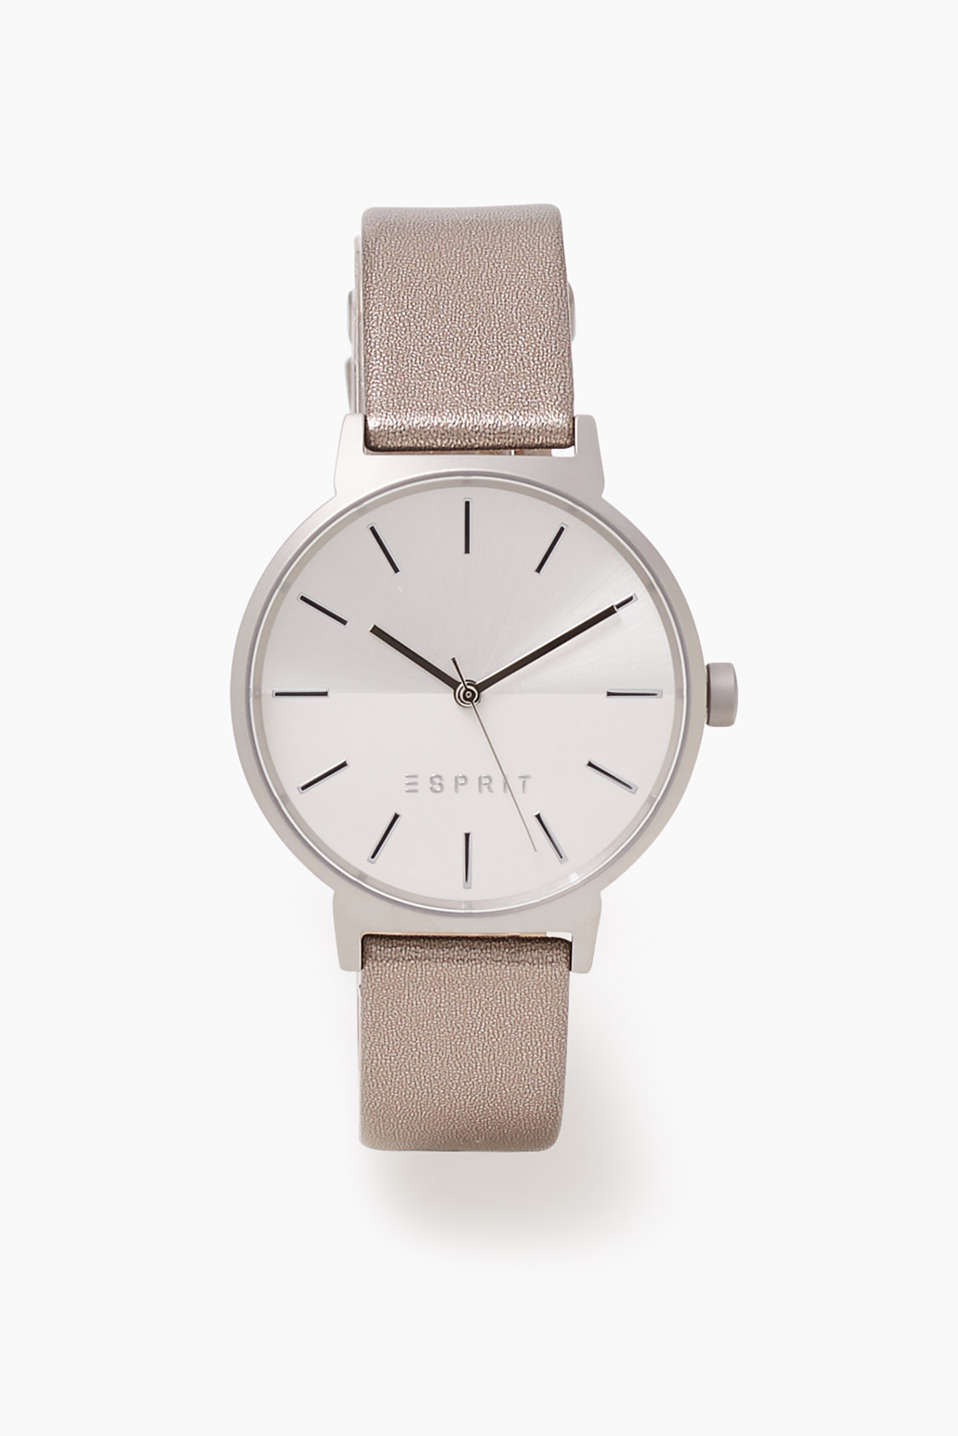 Watch with a matte-reflective dial and a wrist strap in fine calfskin with a metallic finish